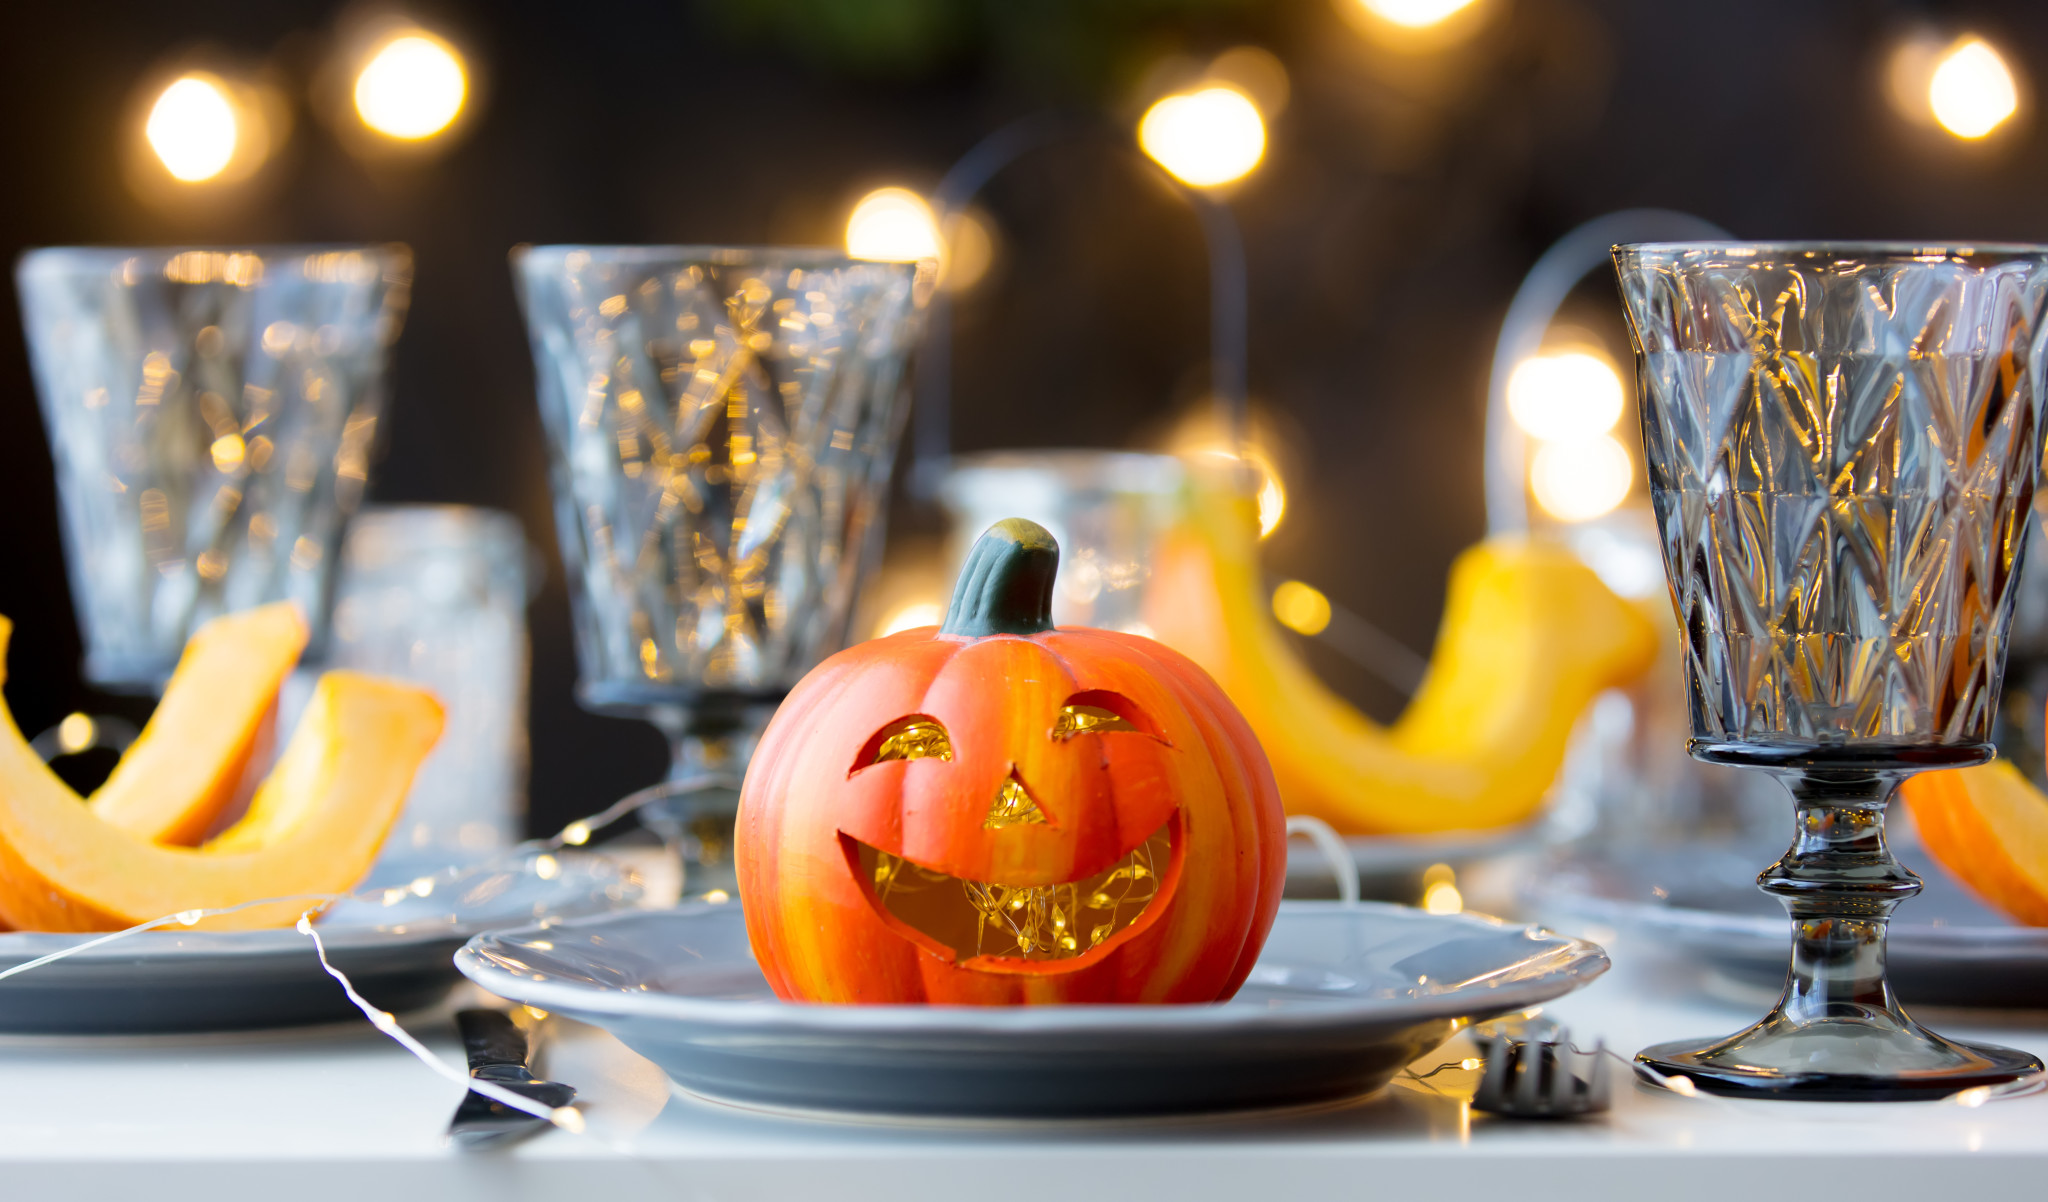 Halloween pumpkin at dishes on dinner with Fairy Ligths on background